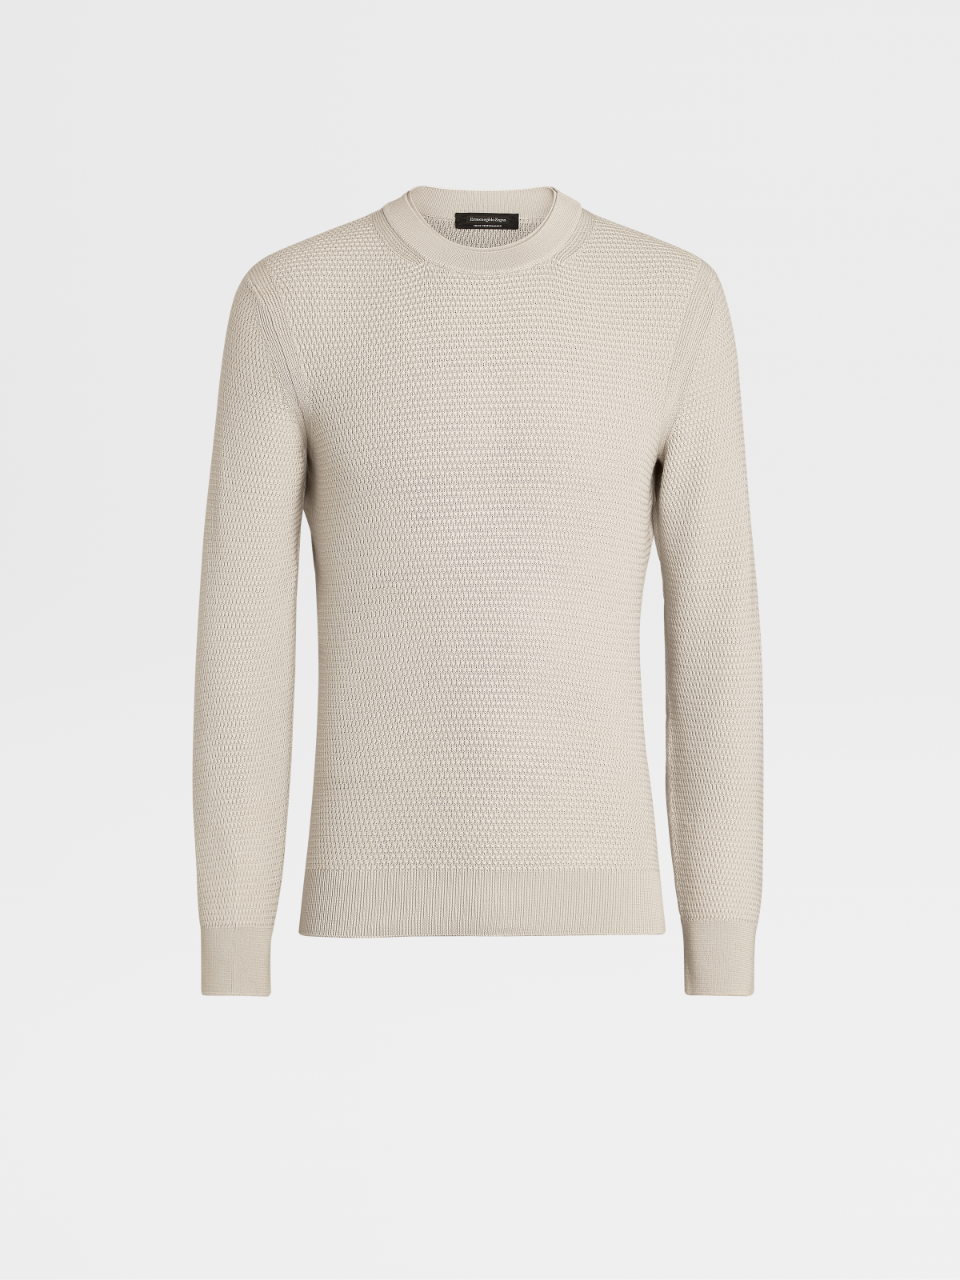 High Performance Wool Knit Crewneck